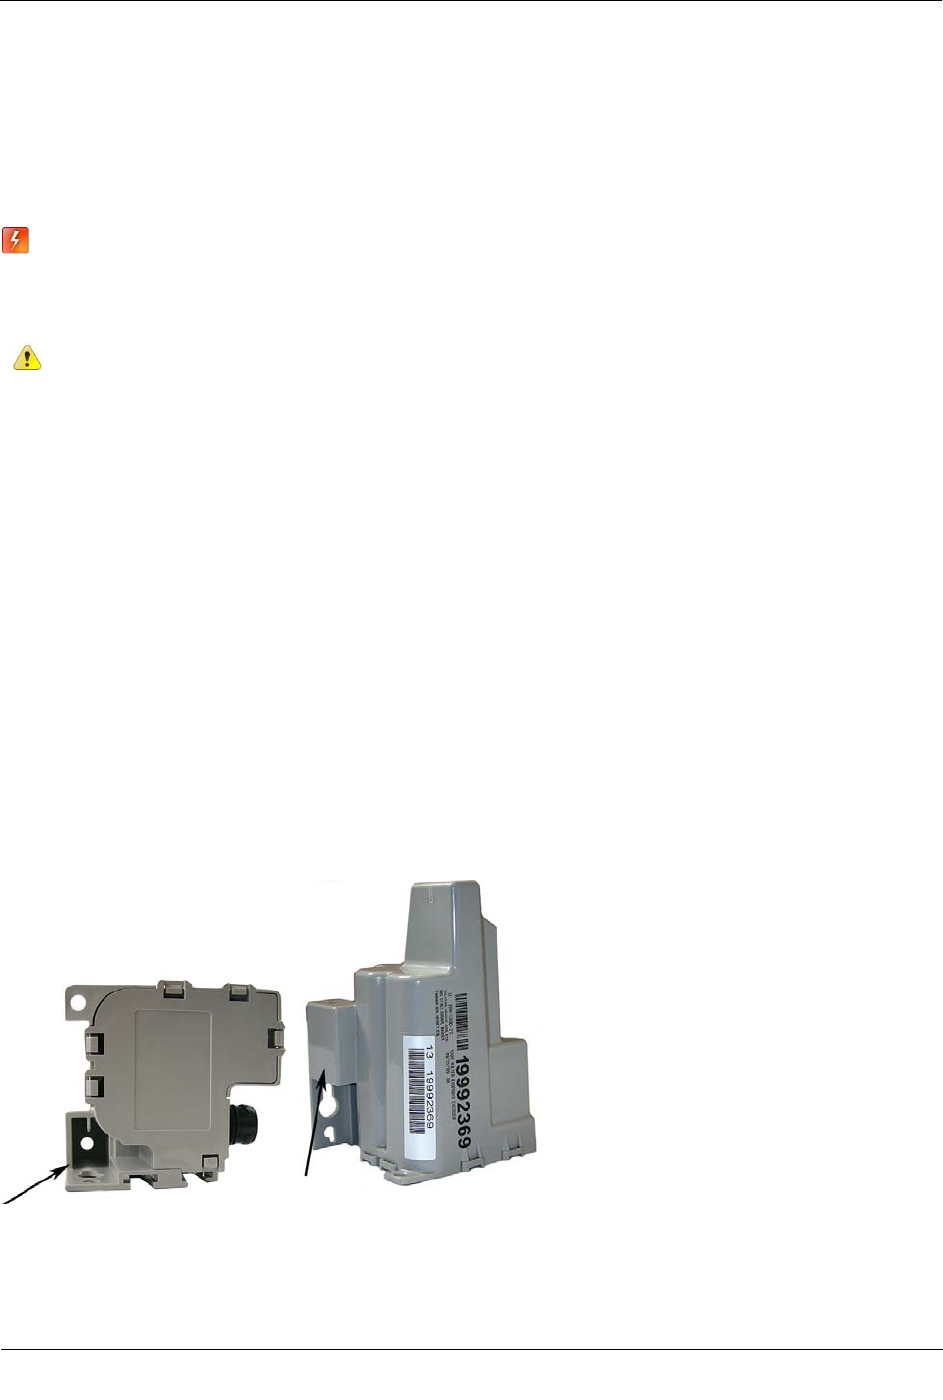 Itron 100WB AMR transceiver device for utility meters User ... on